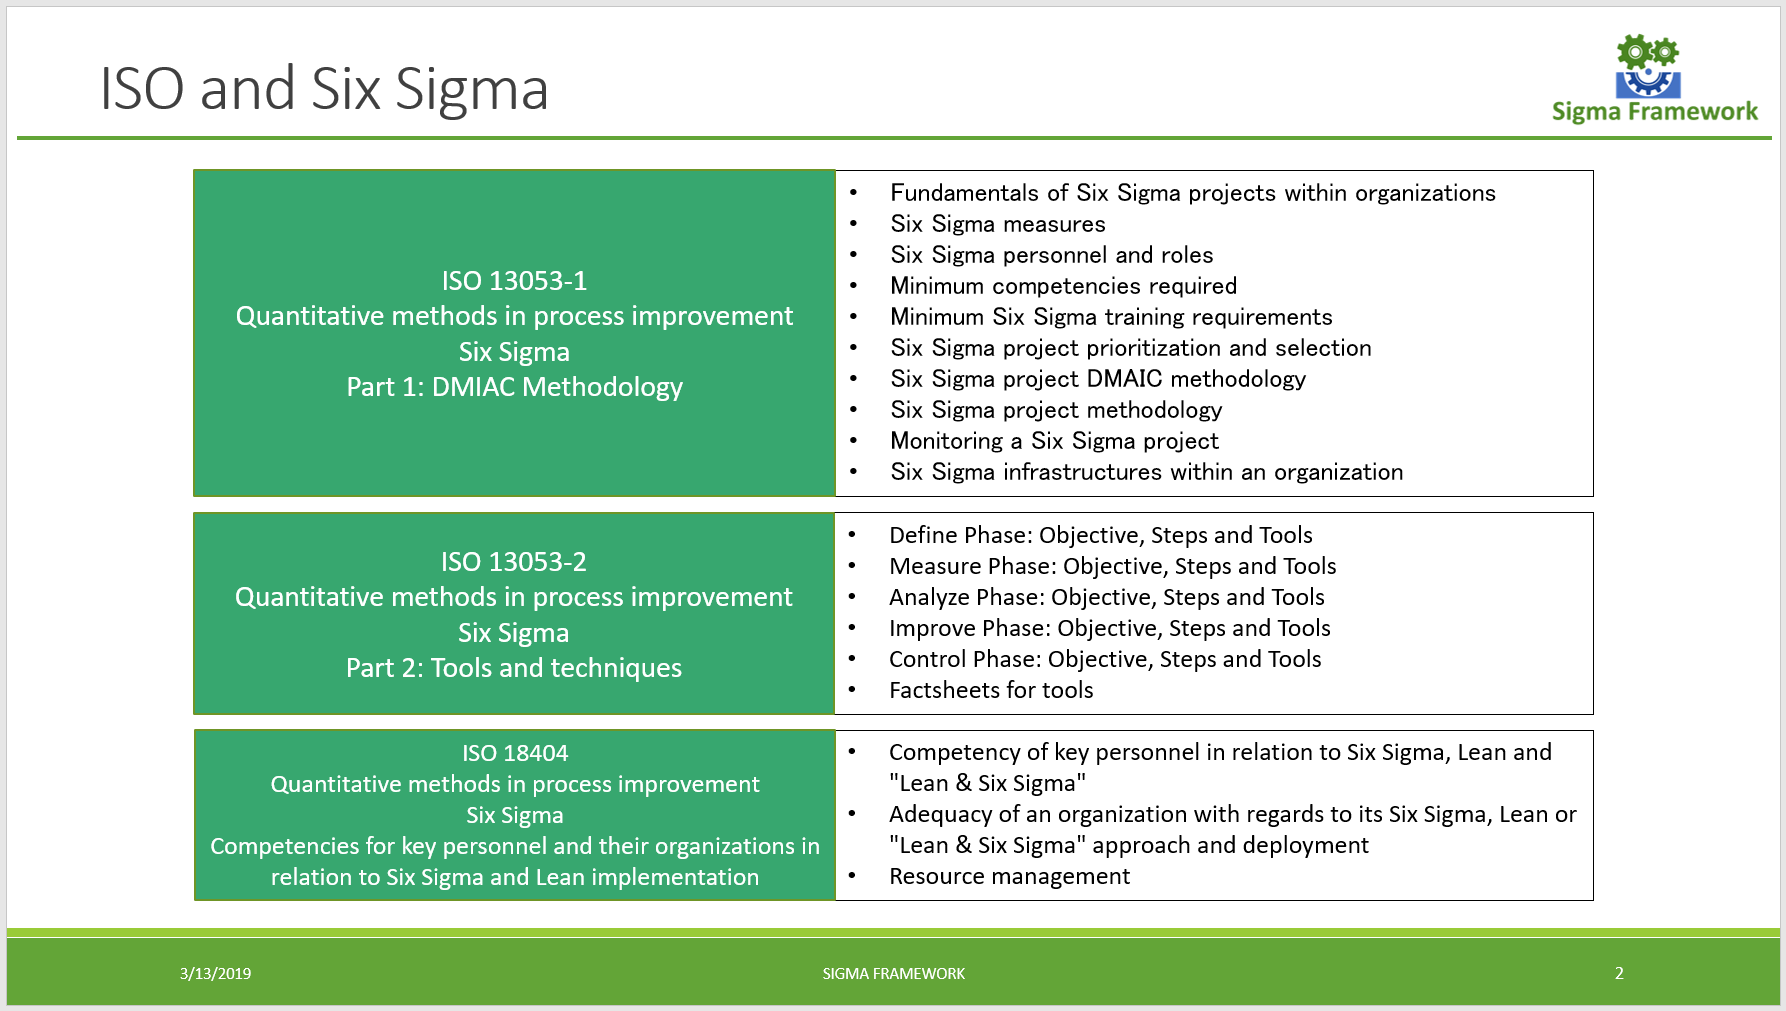 Essay: ISO and Six Sigma – Sigma Framework